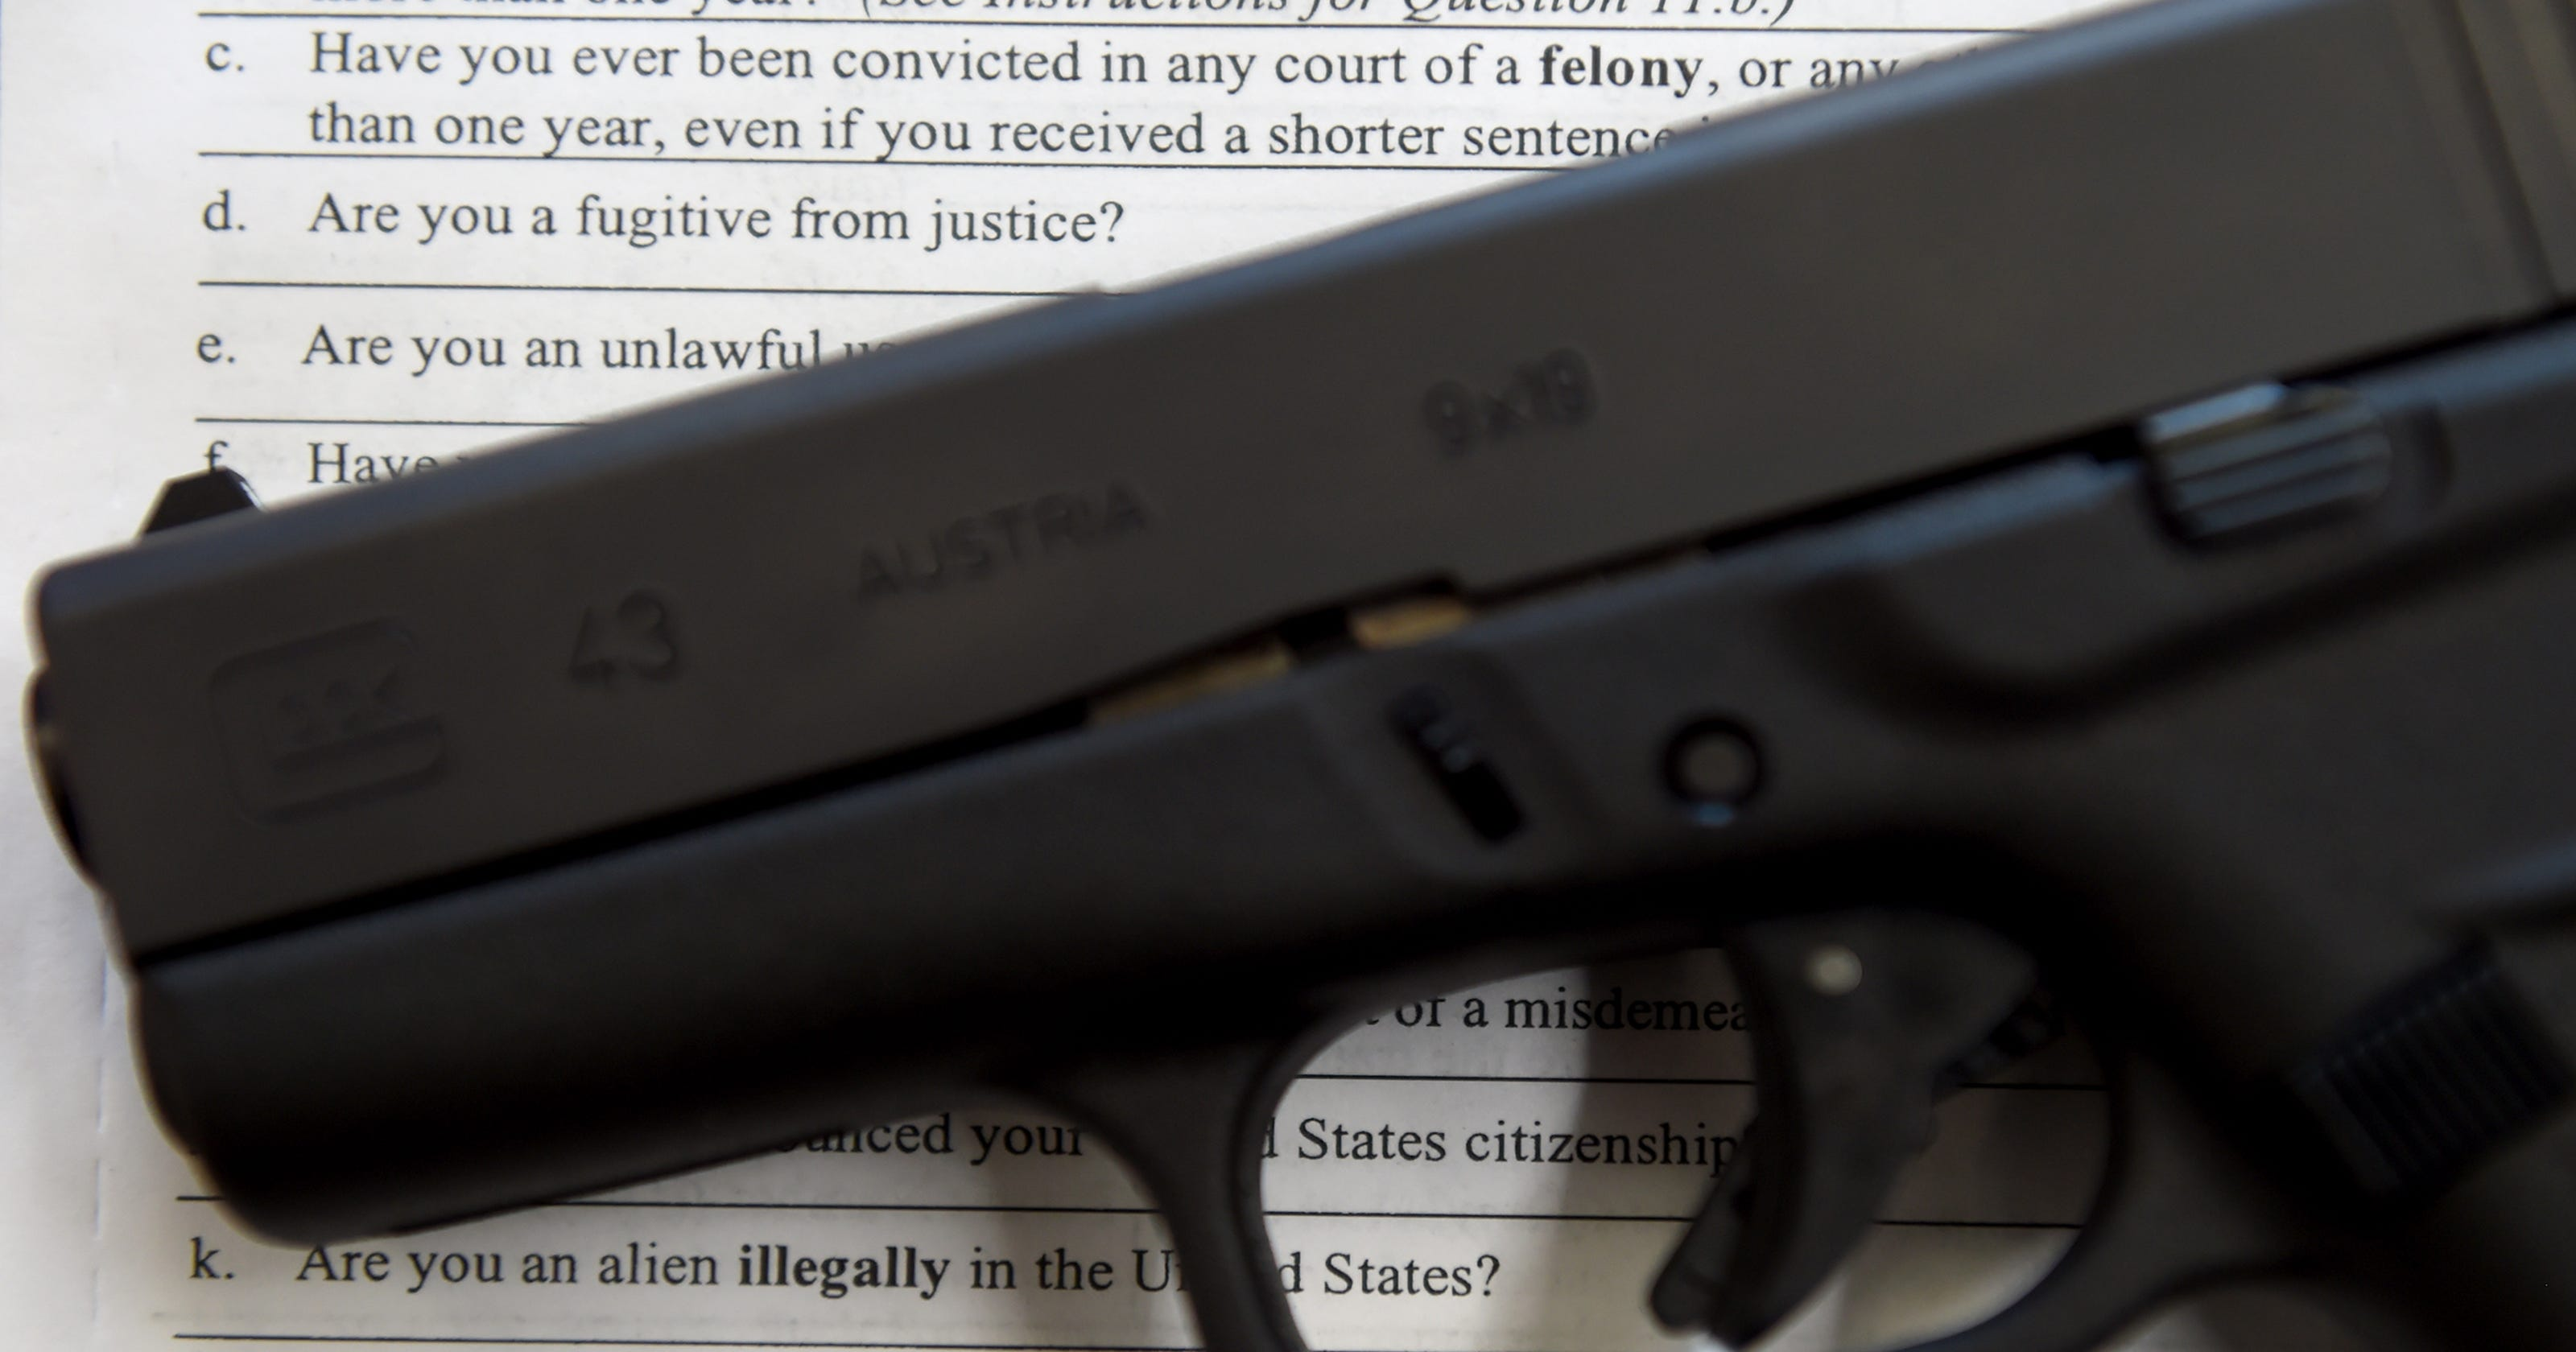 Buying a gun? Don't commit this felony by accident